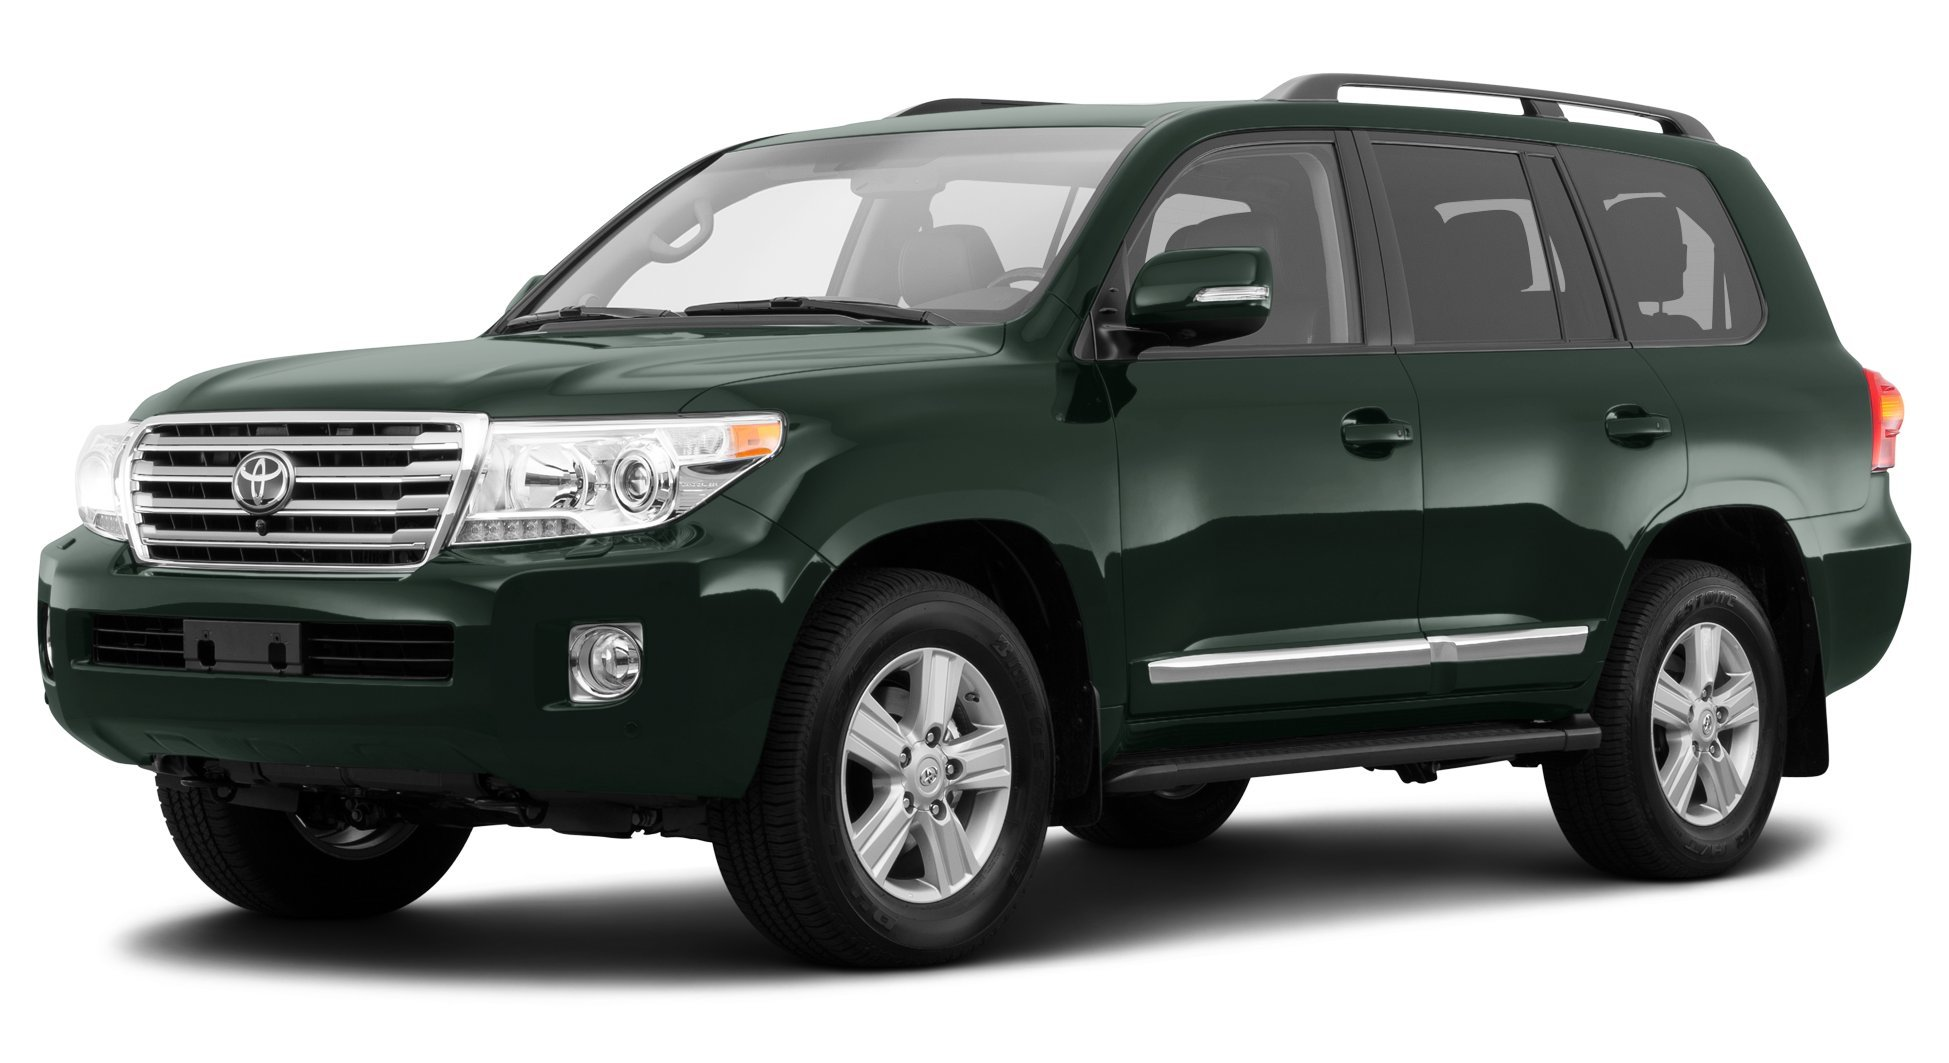 71Vt93m3EAL Take A Look About 2009 Lexus Lx 570 with Fascinating Photos Cars Review